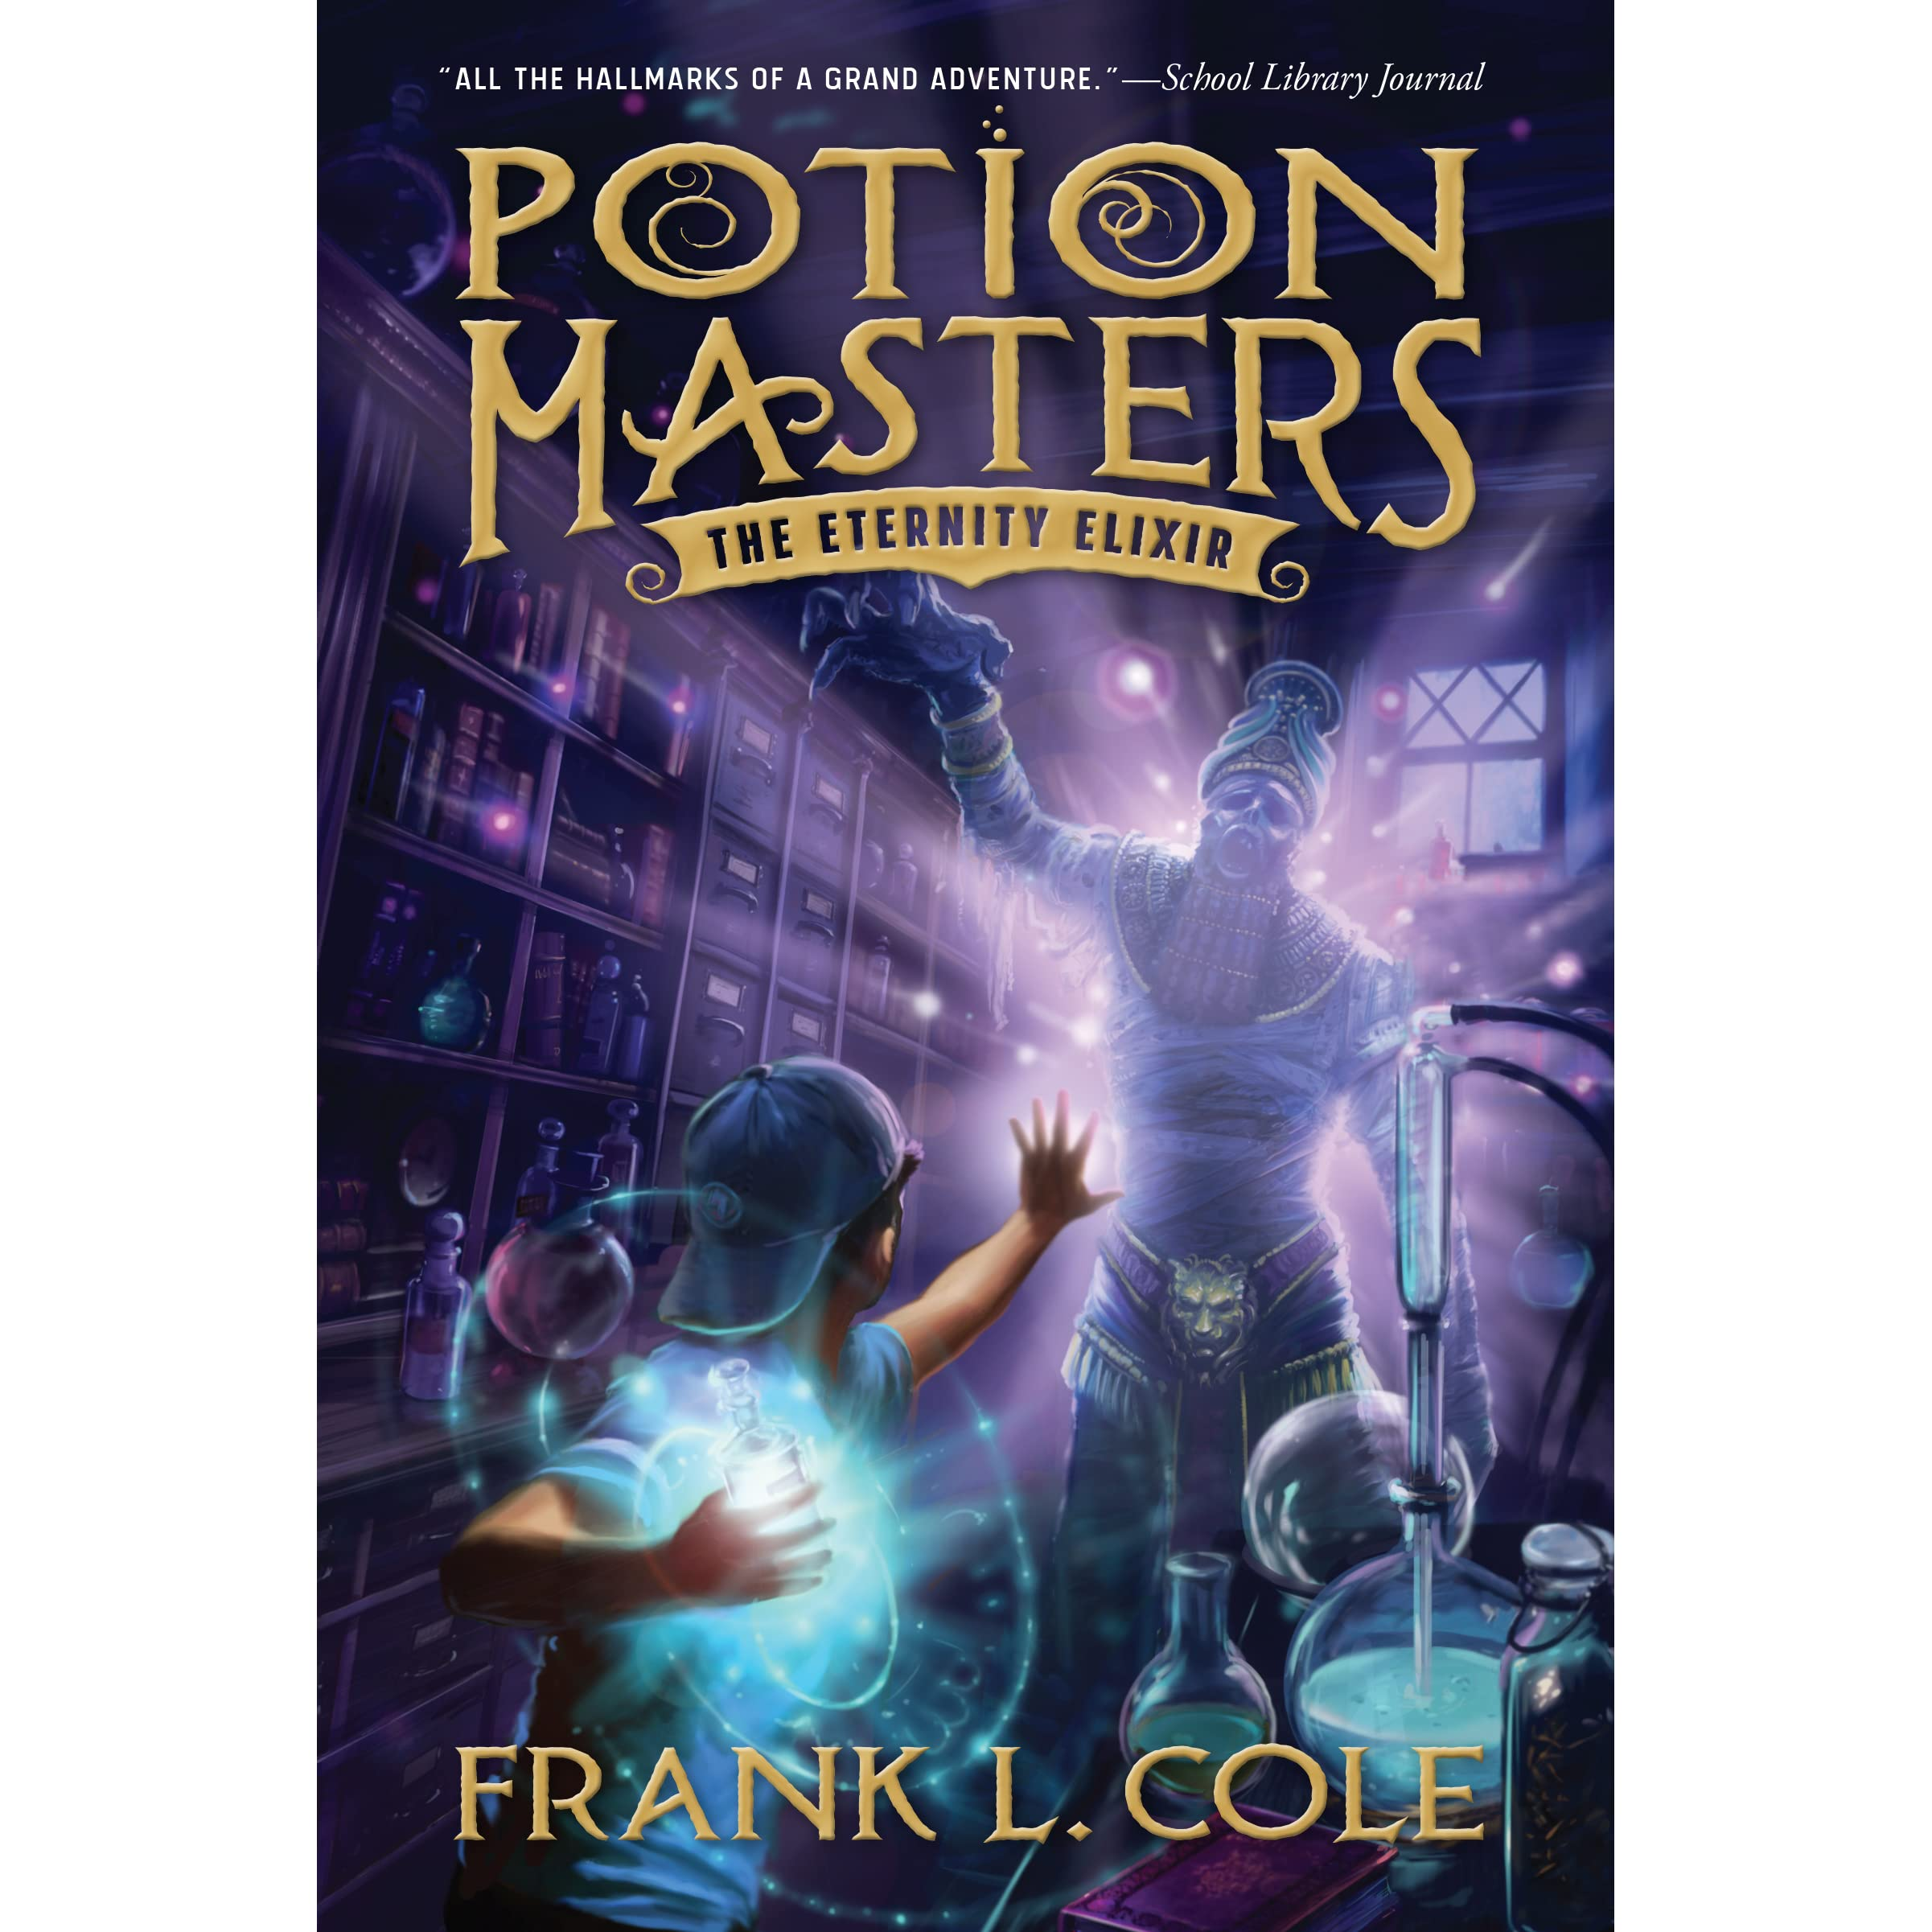 The eternity elixir potion masters 1 by frank l cole solutioingenieria Gallery